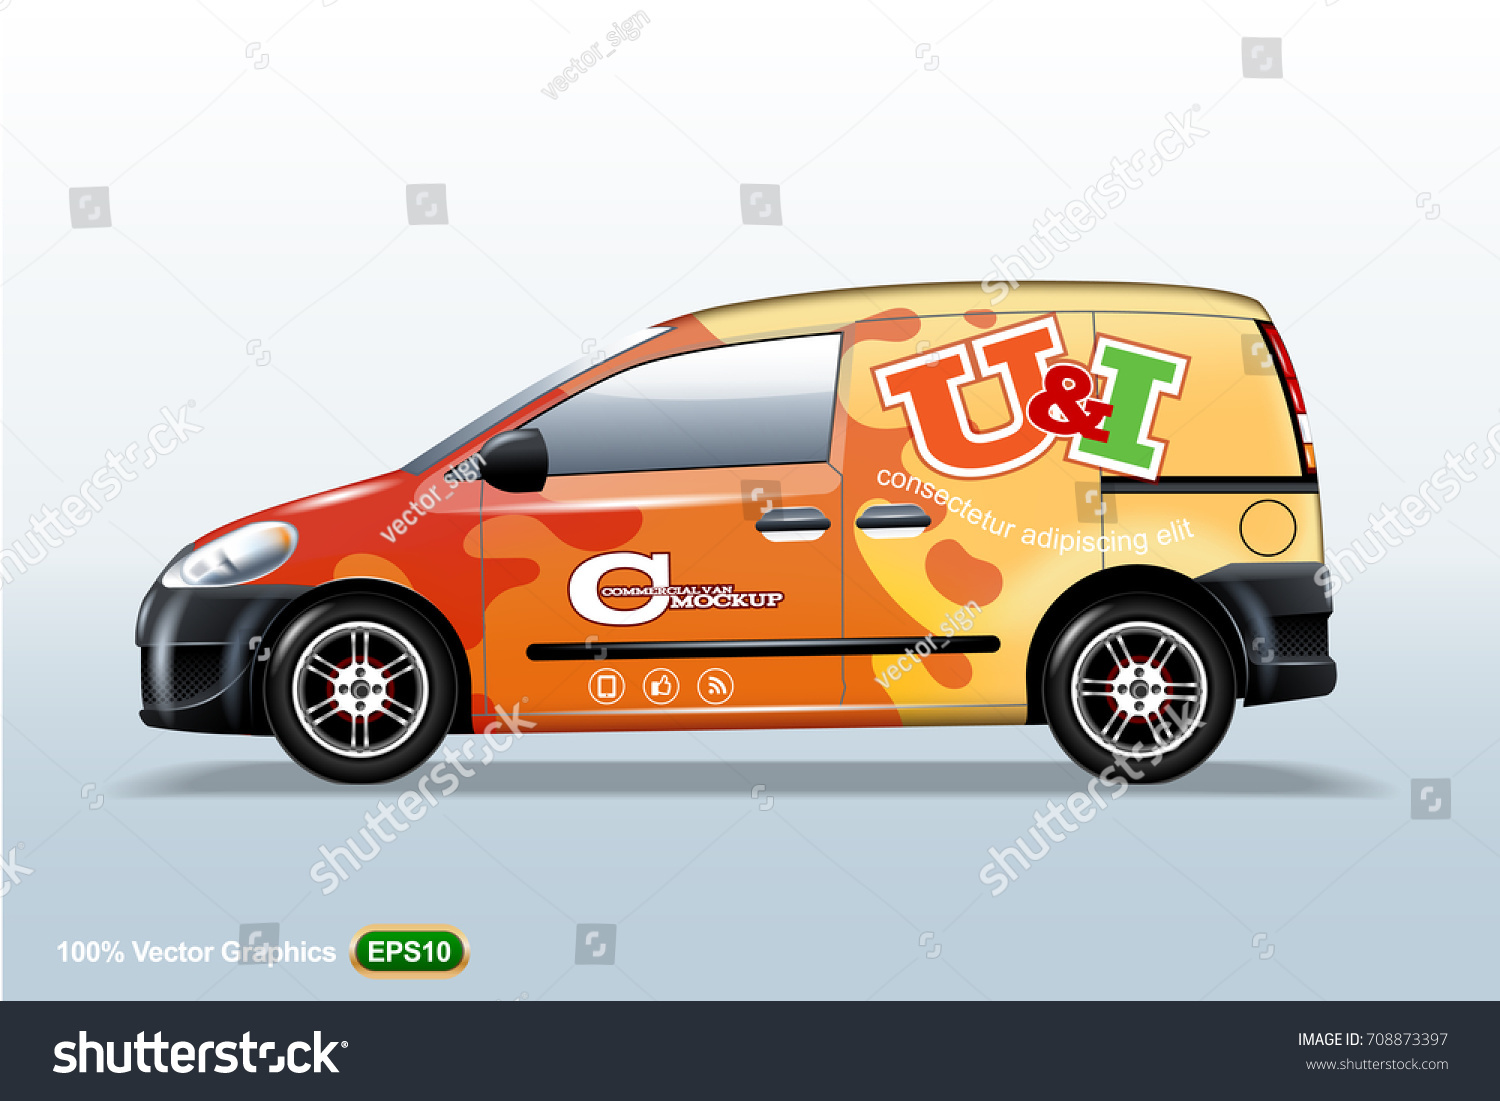 Commercial Vehiclevan Template Advertising Editable Layout